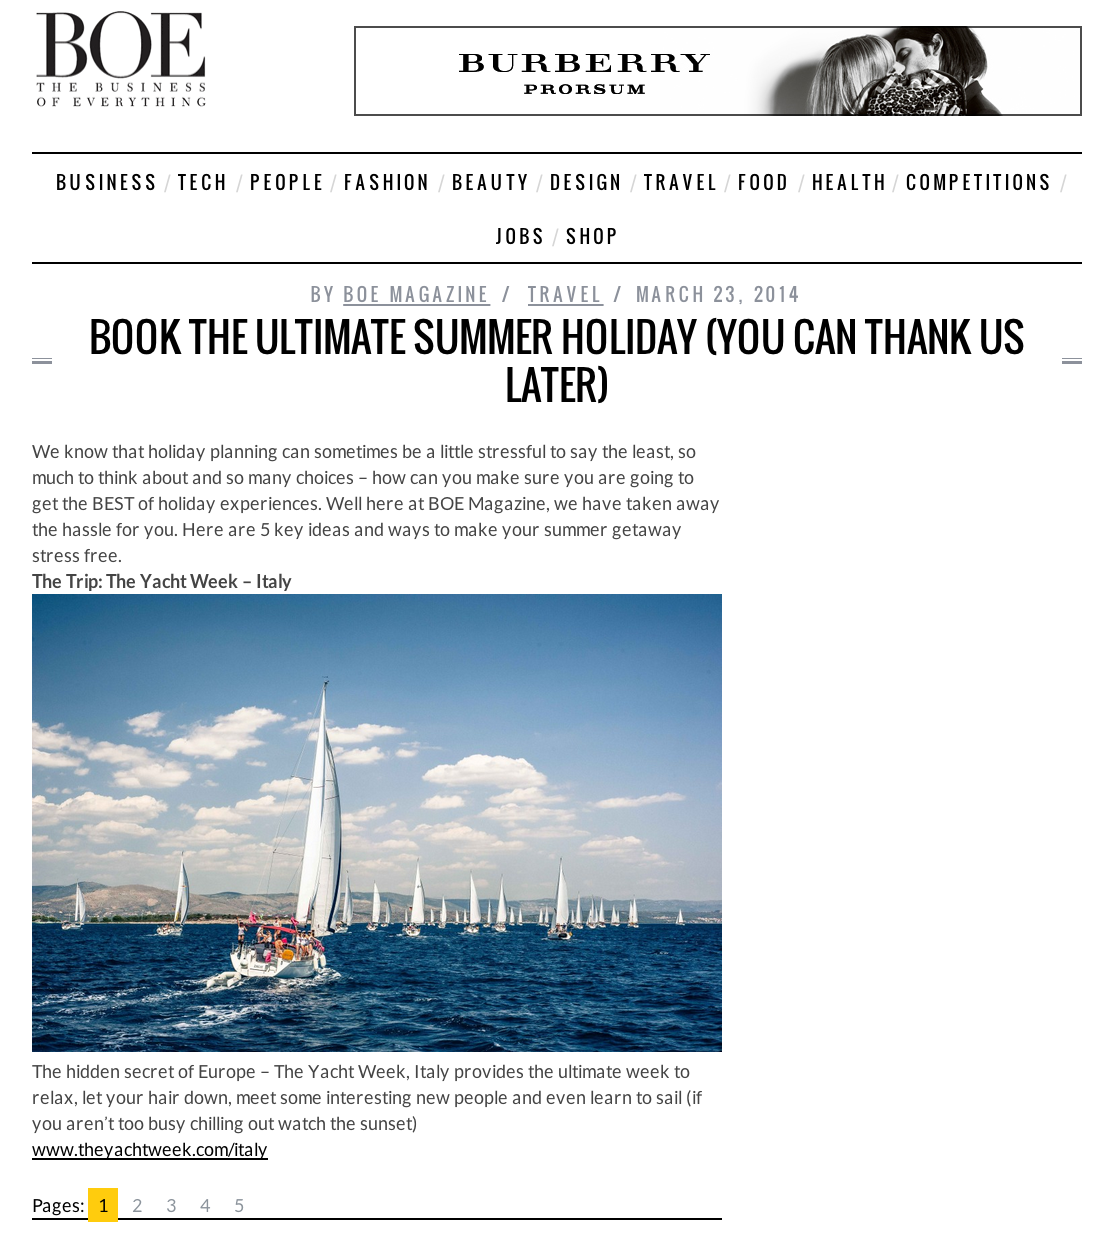 BOE Magazine is featuring The Yacht Week